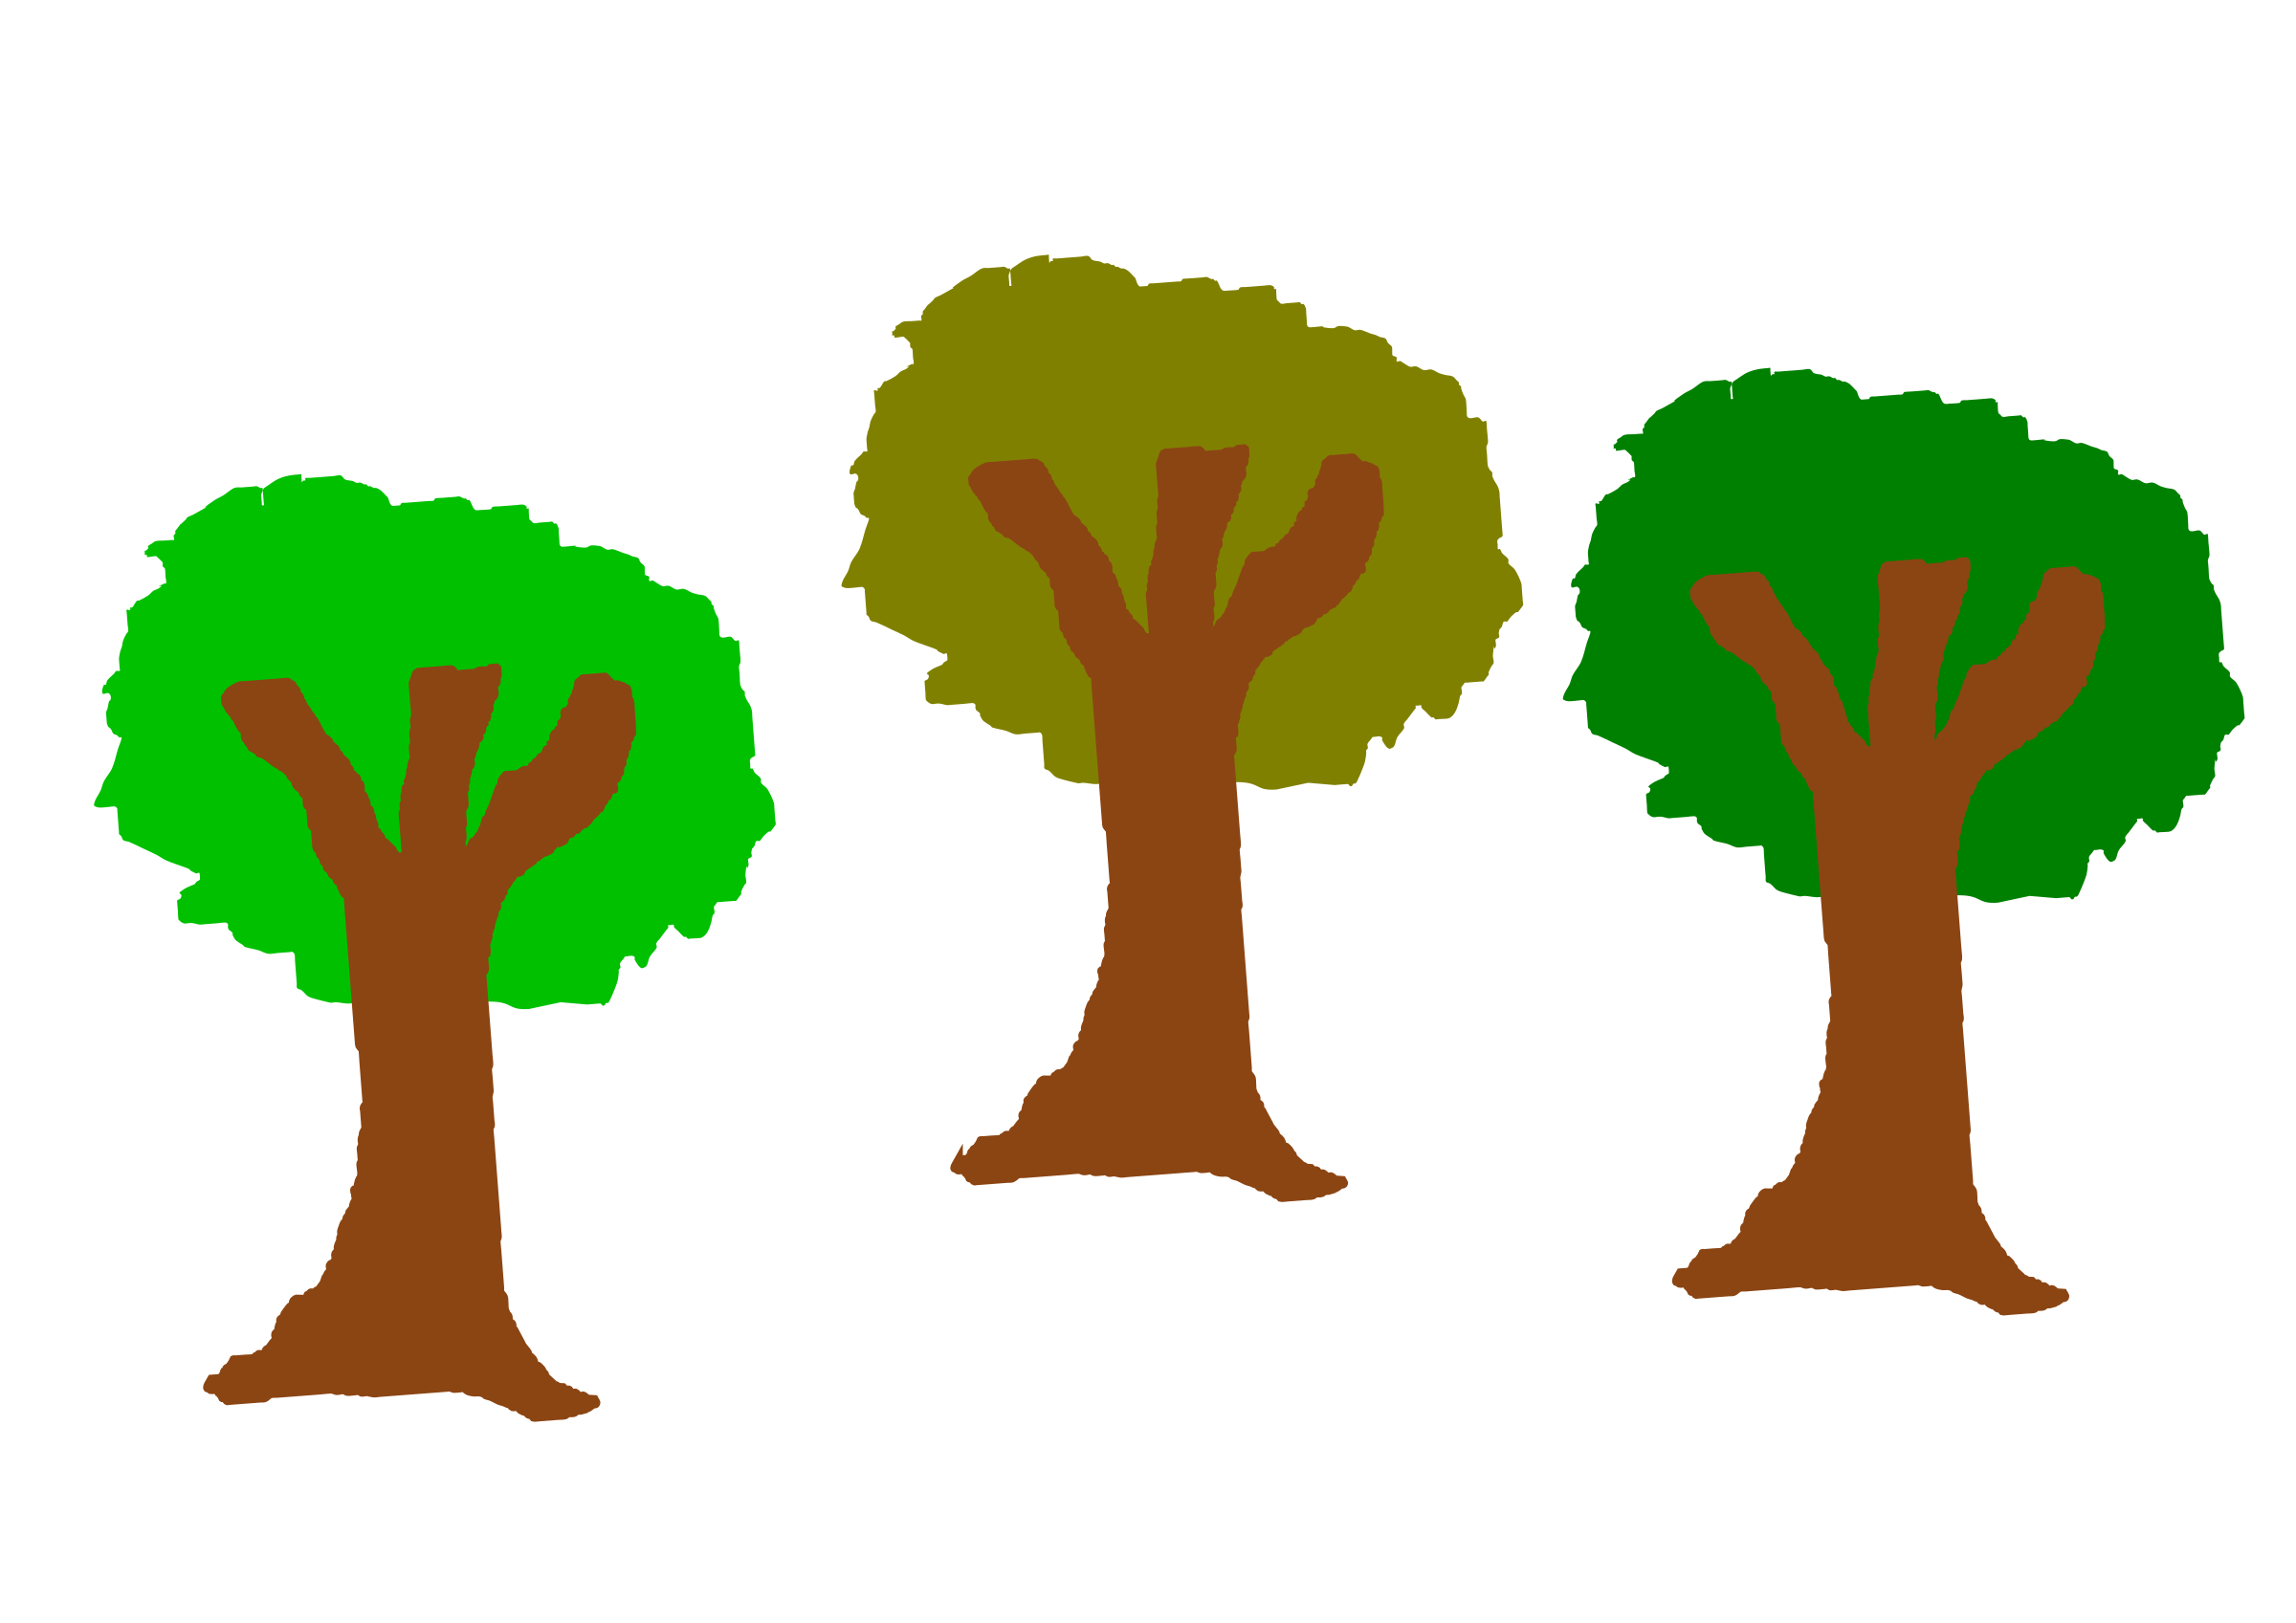 Tree clipart vegetable. The three trees big